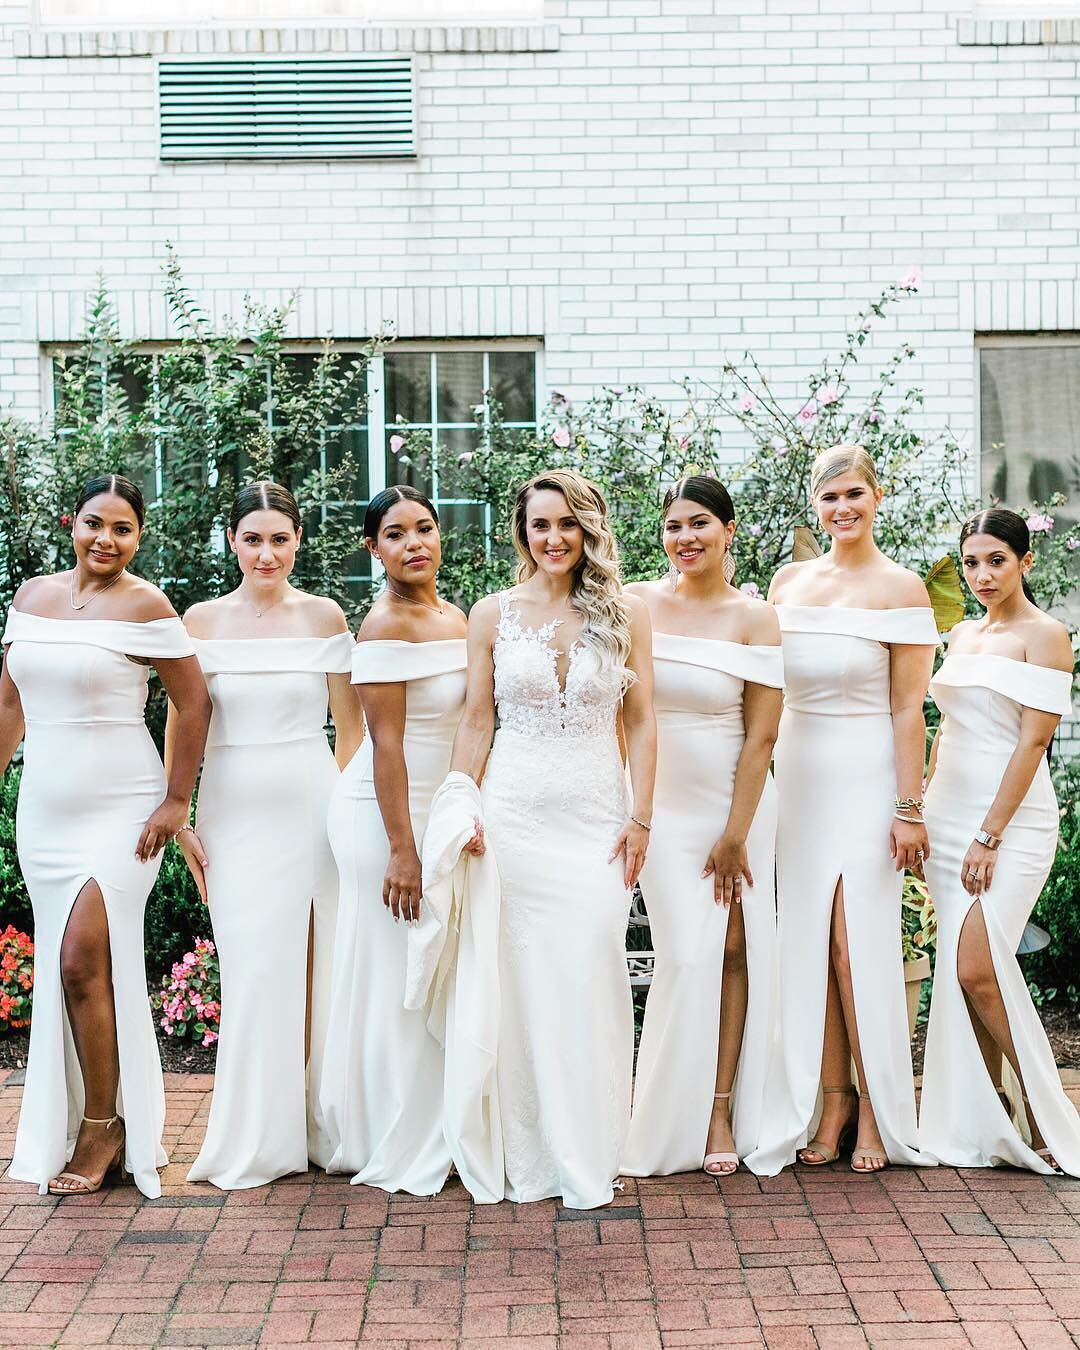 7 Bridal Parties That Will Make You Fall In Love With The